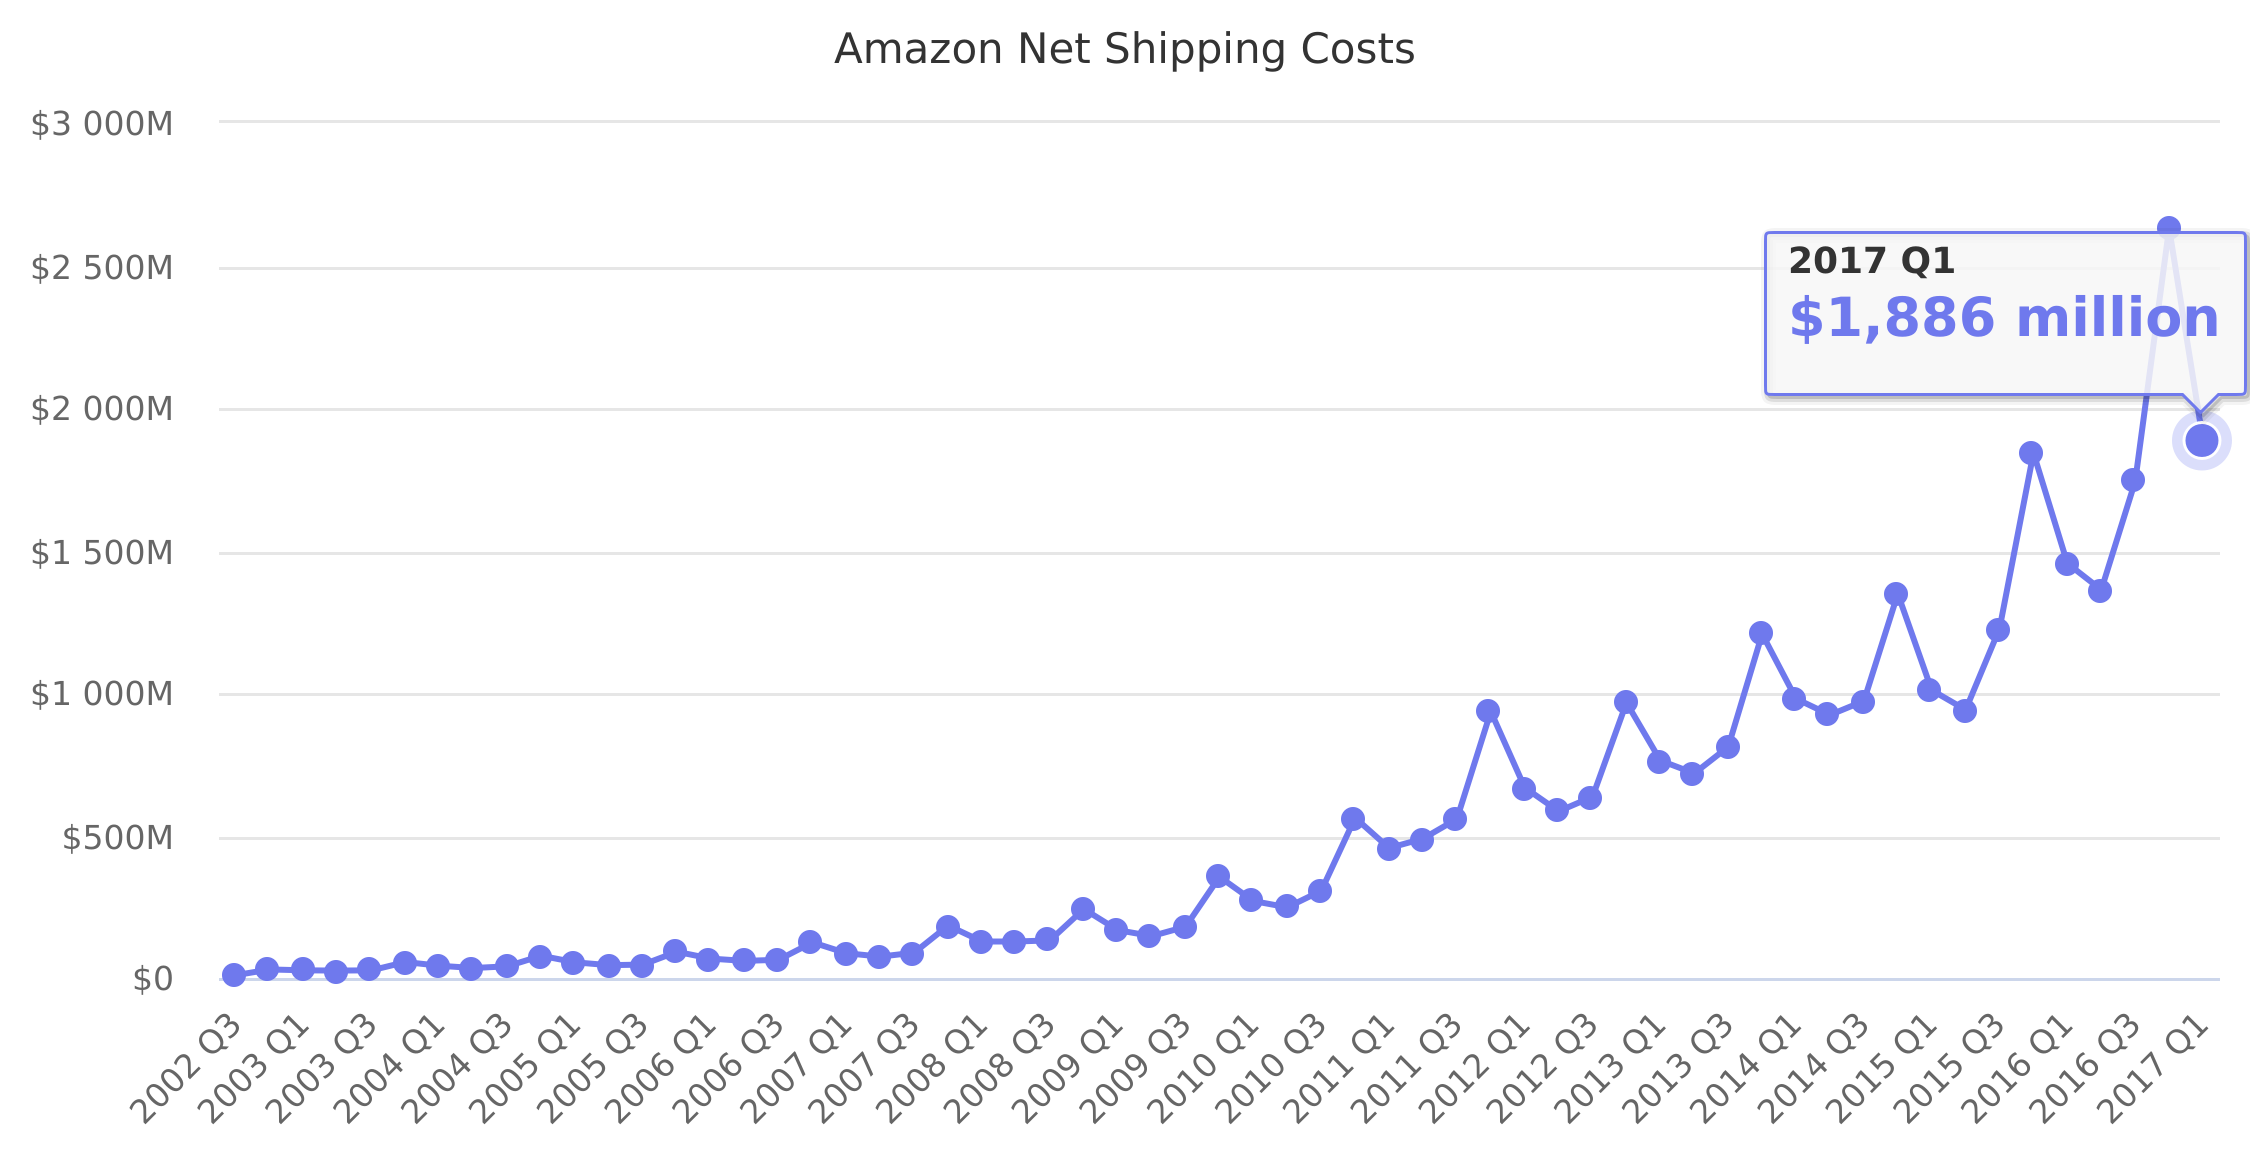 Amazon Net Shipping Costs 2002-2017